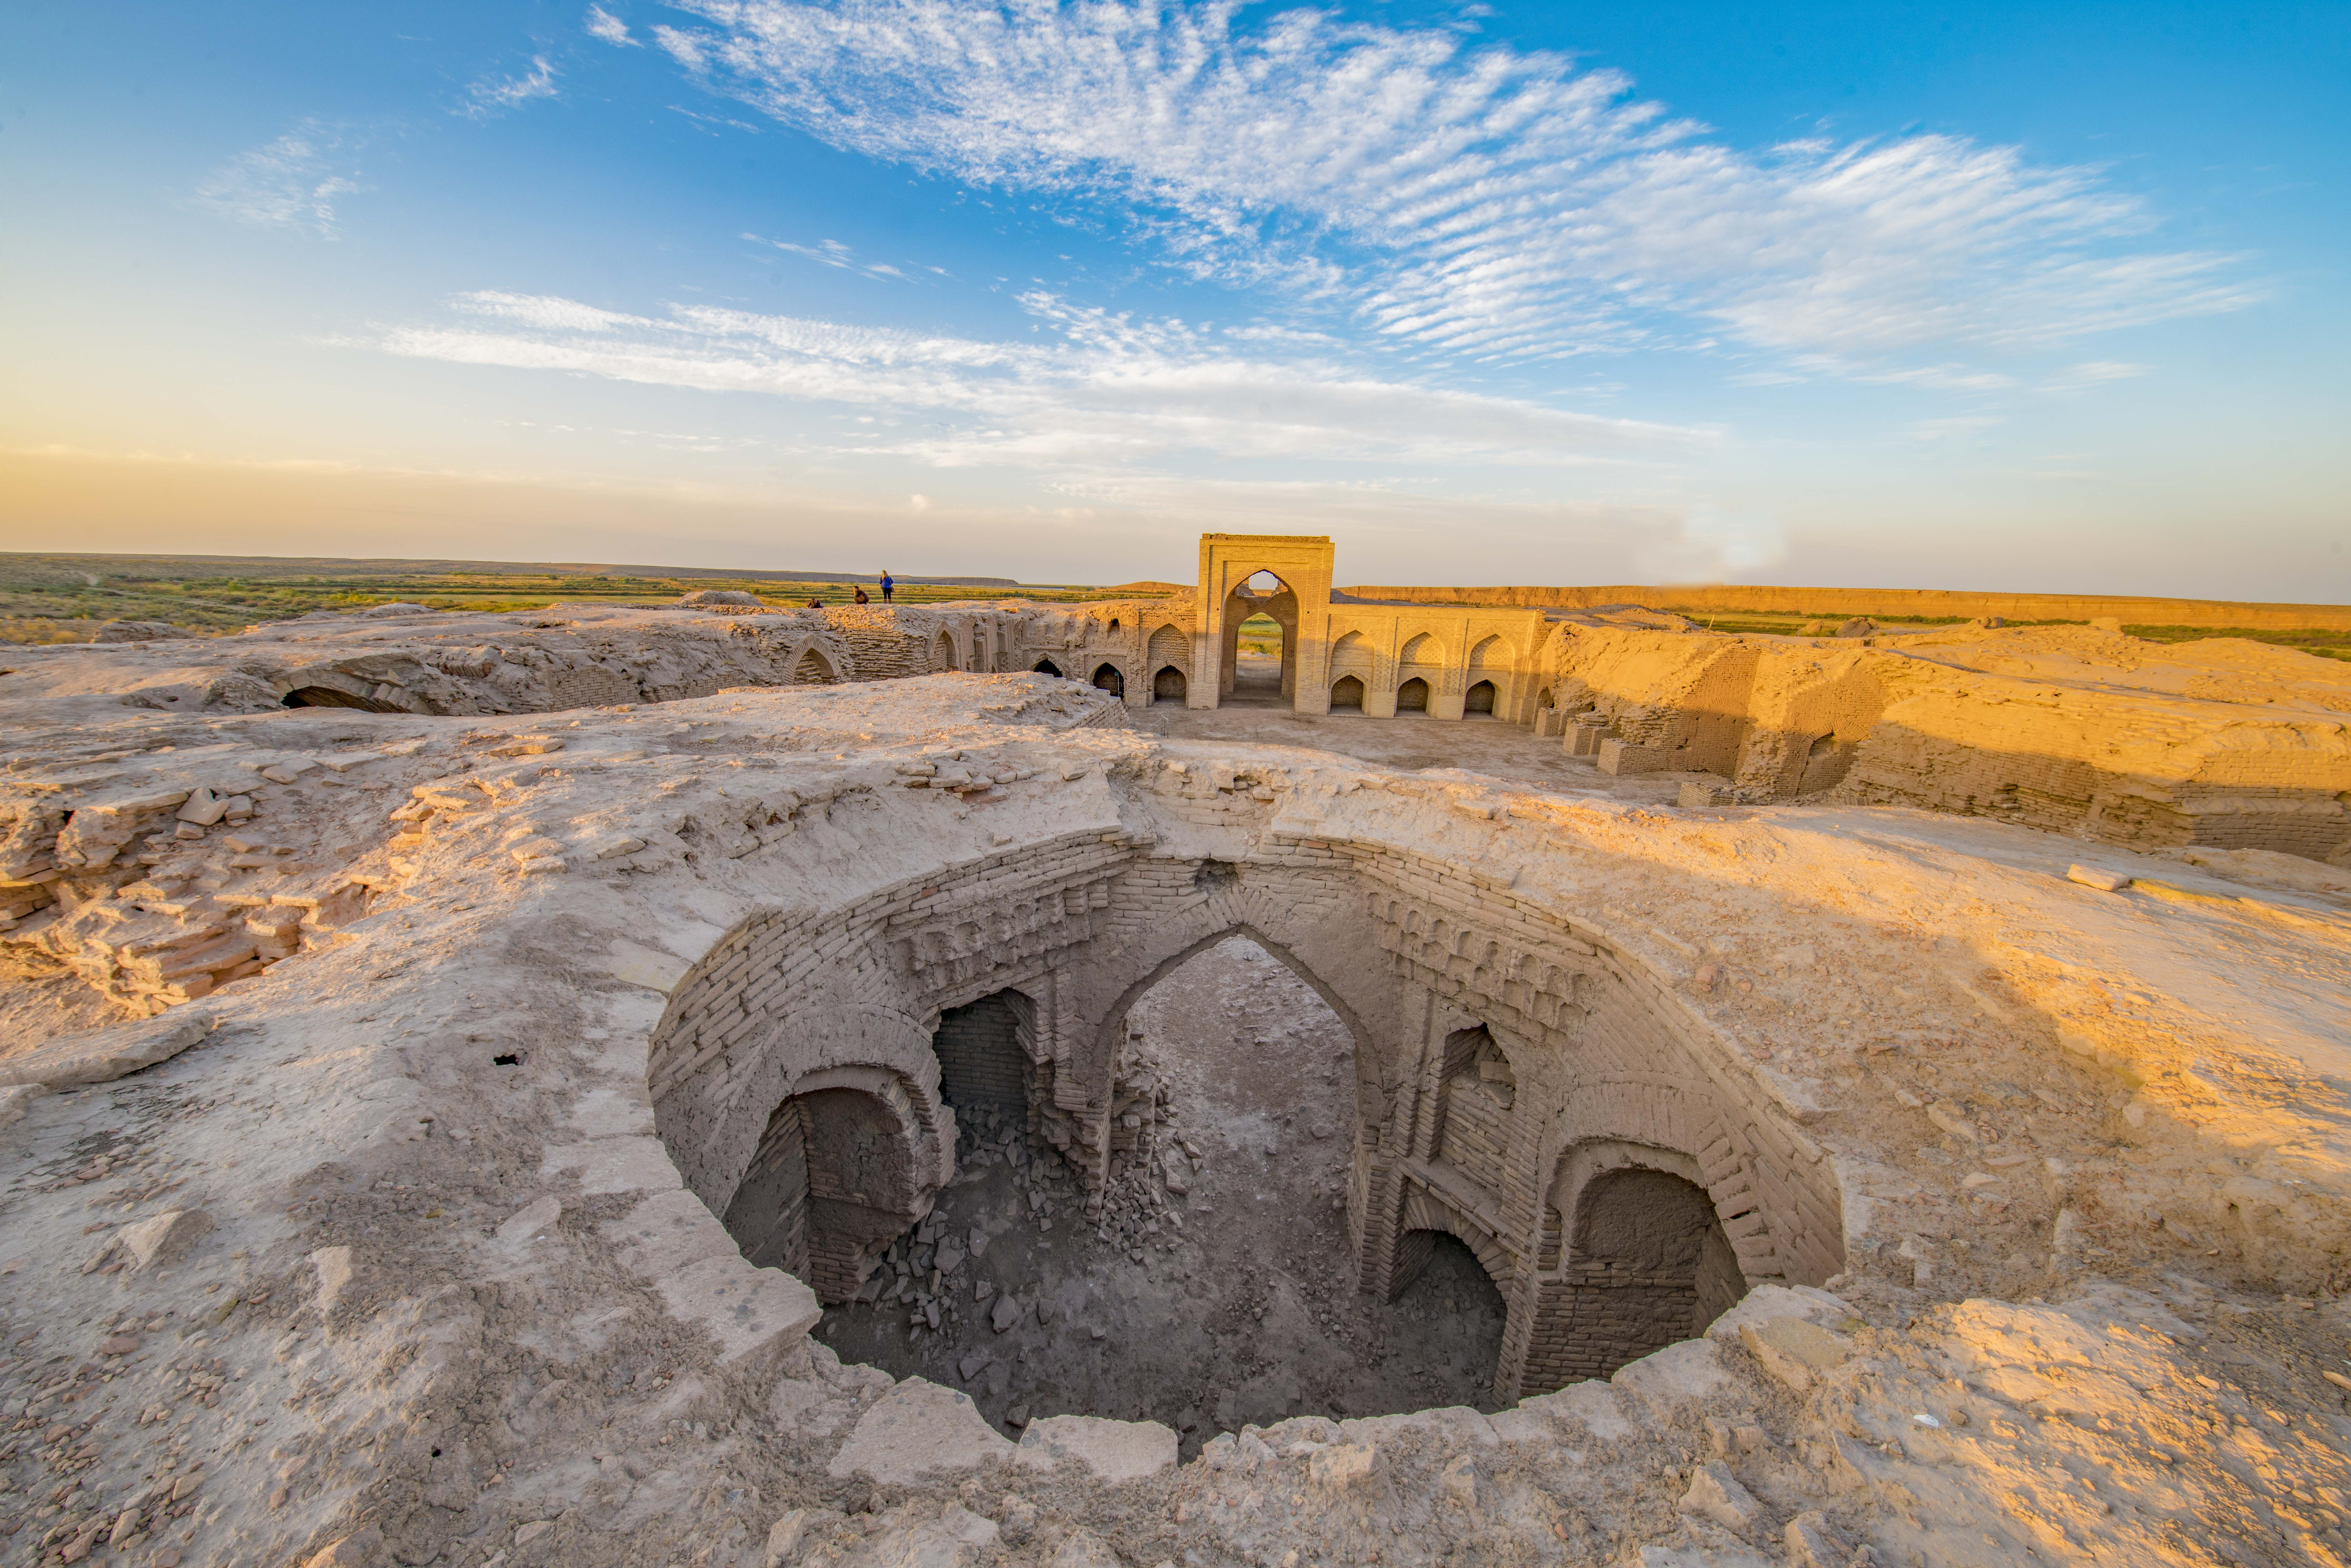 Caravanserai at Dayahatyn, Turkmenistan Photographed by Tom Till